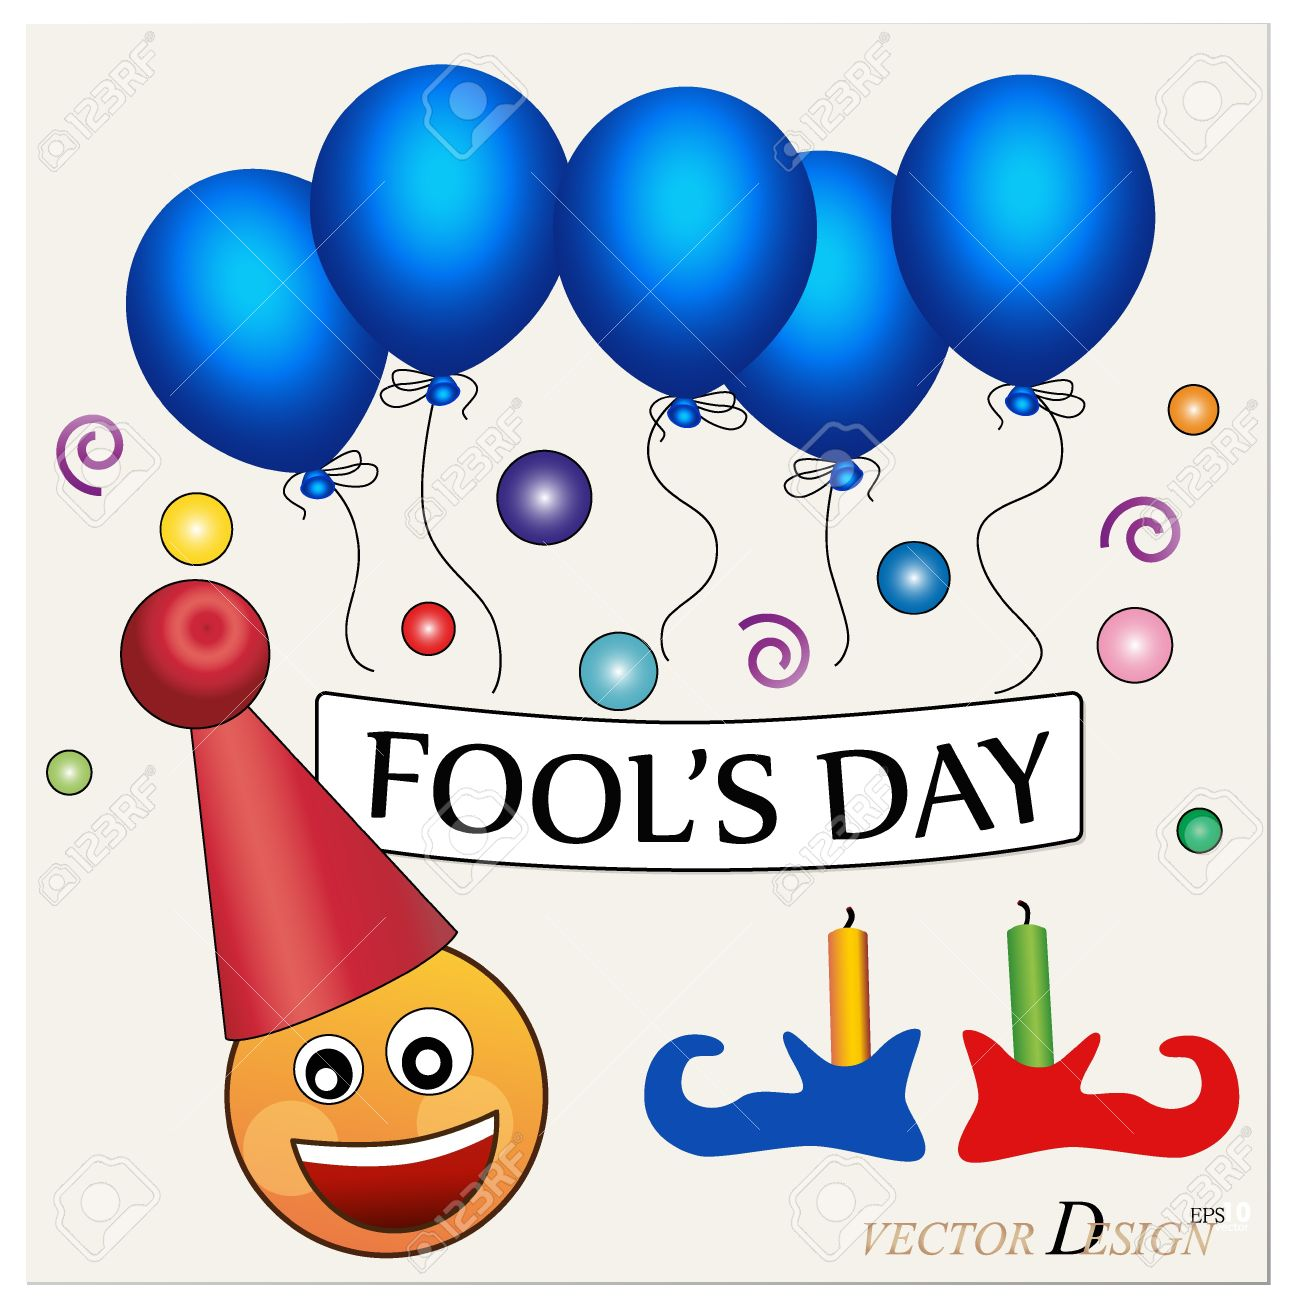 Free clip art april fools day clipart free library Fool's Day. Celebrating April Fools' Day. The Amusing Clown With ... clipart free library